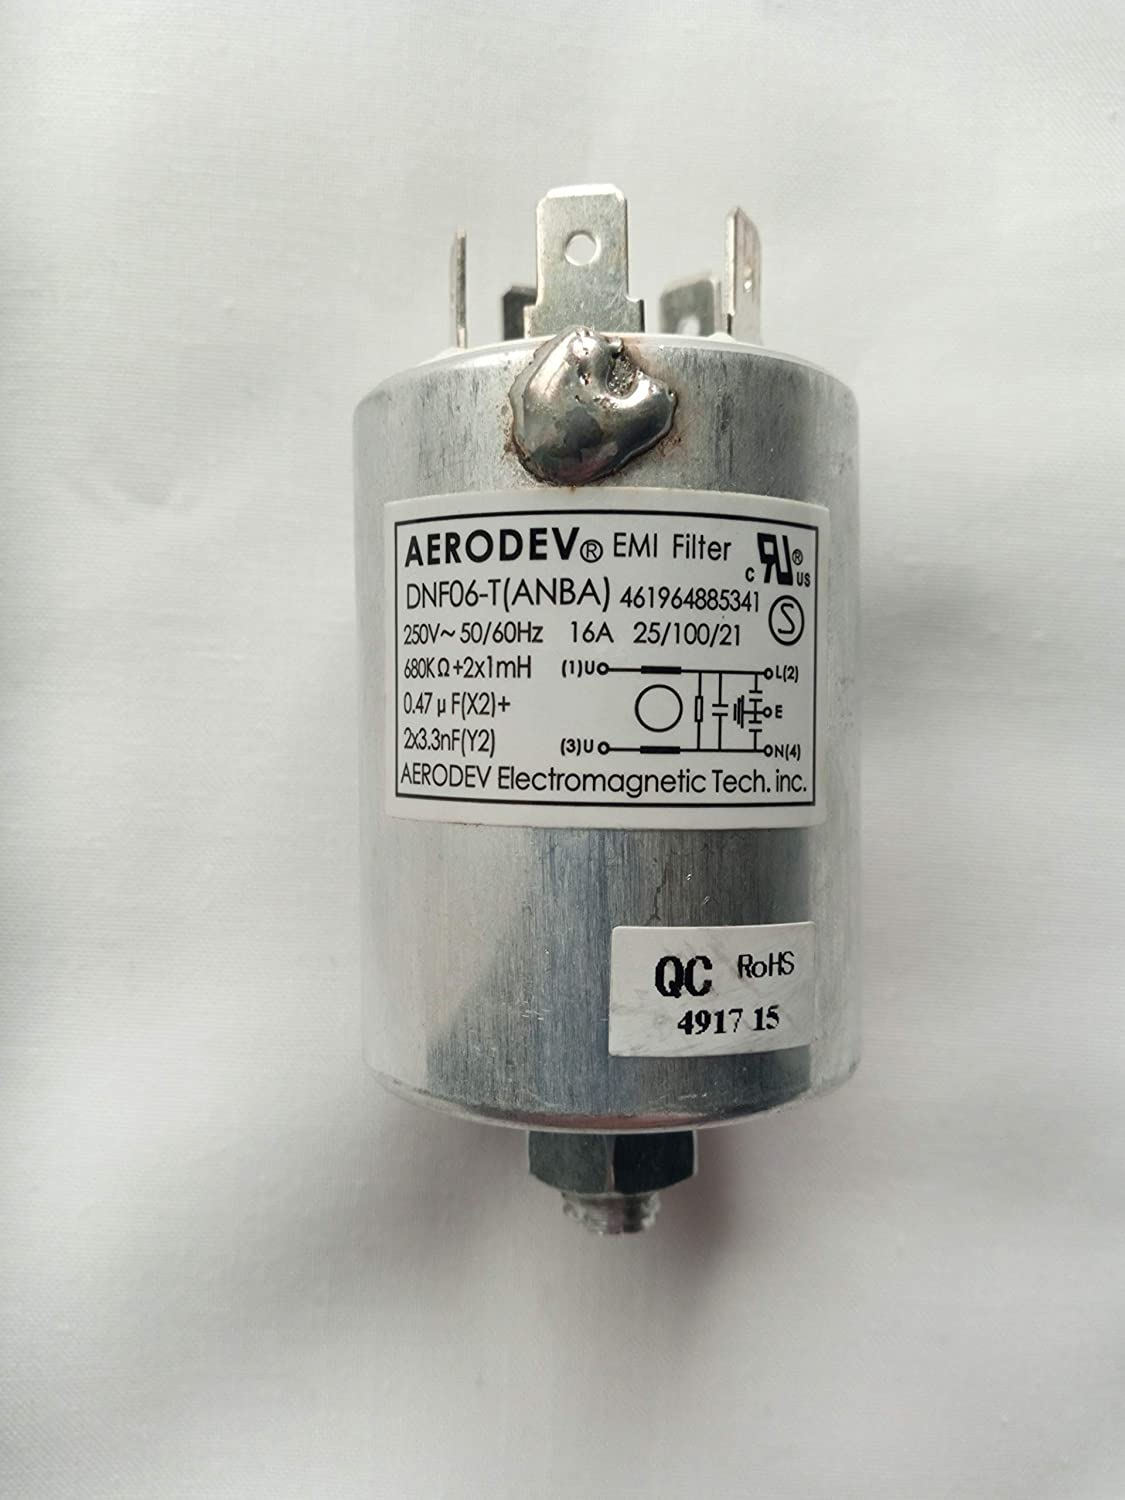 WHIRLPOOL - INTERFERENCE CAPACITOR - 0.47µF - 481212208003